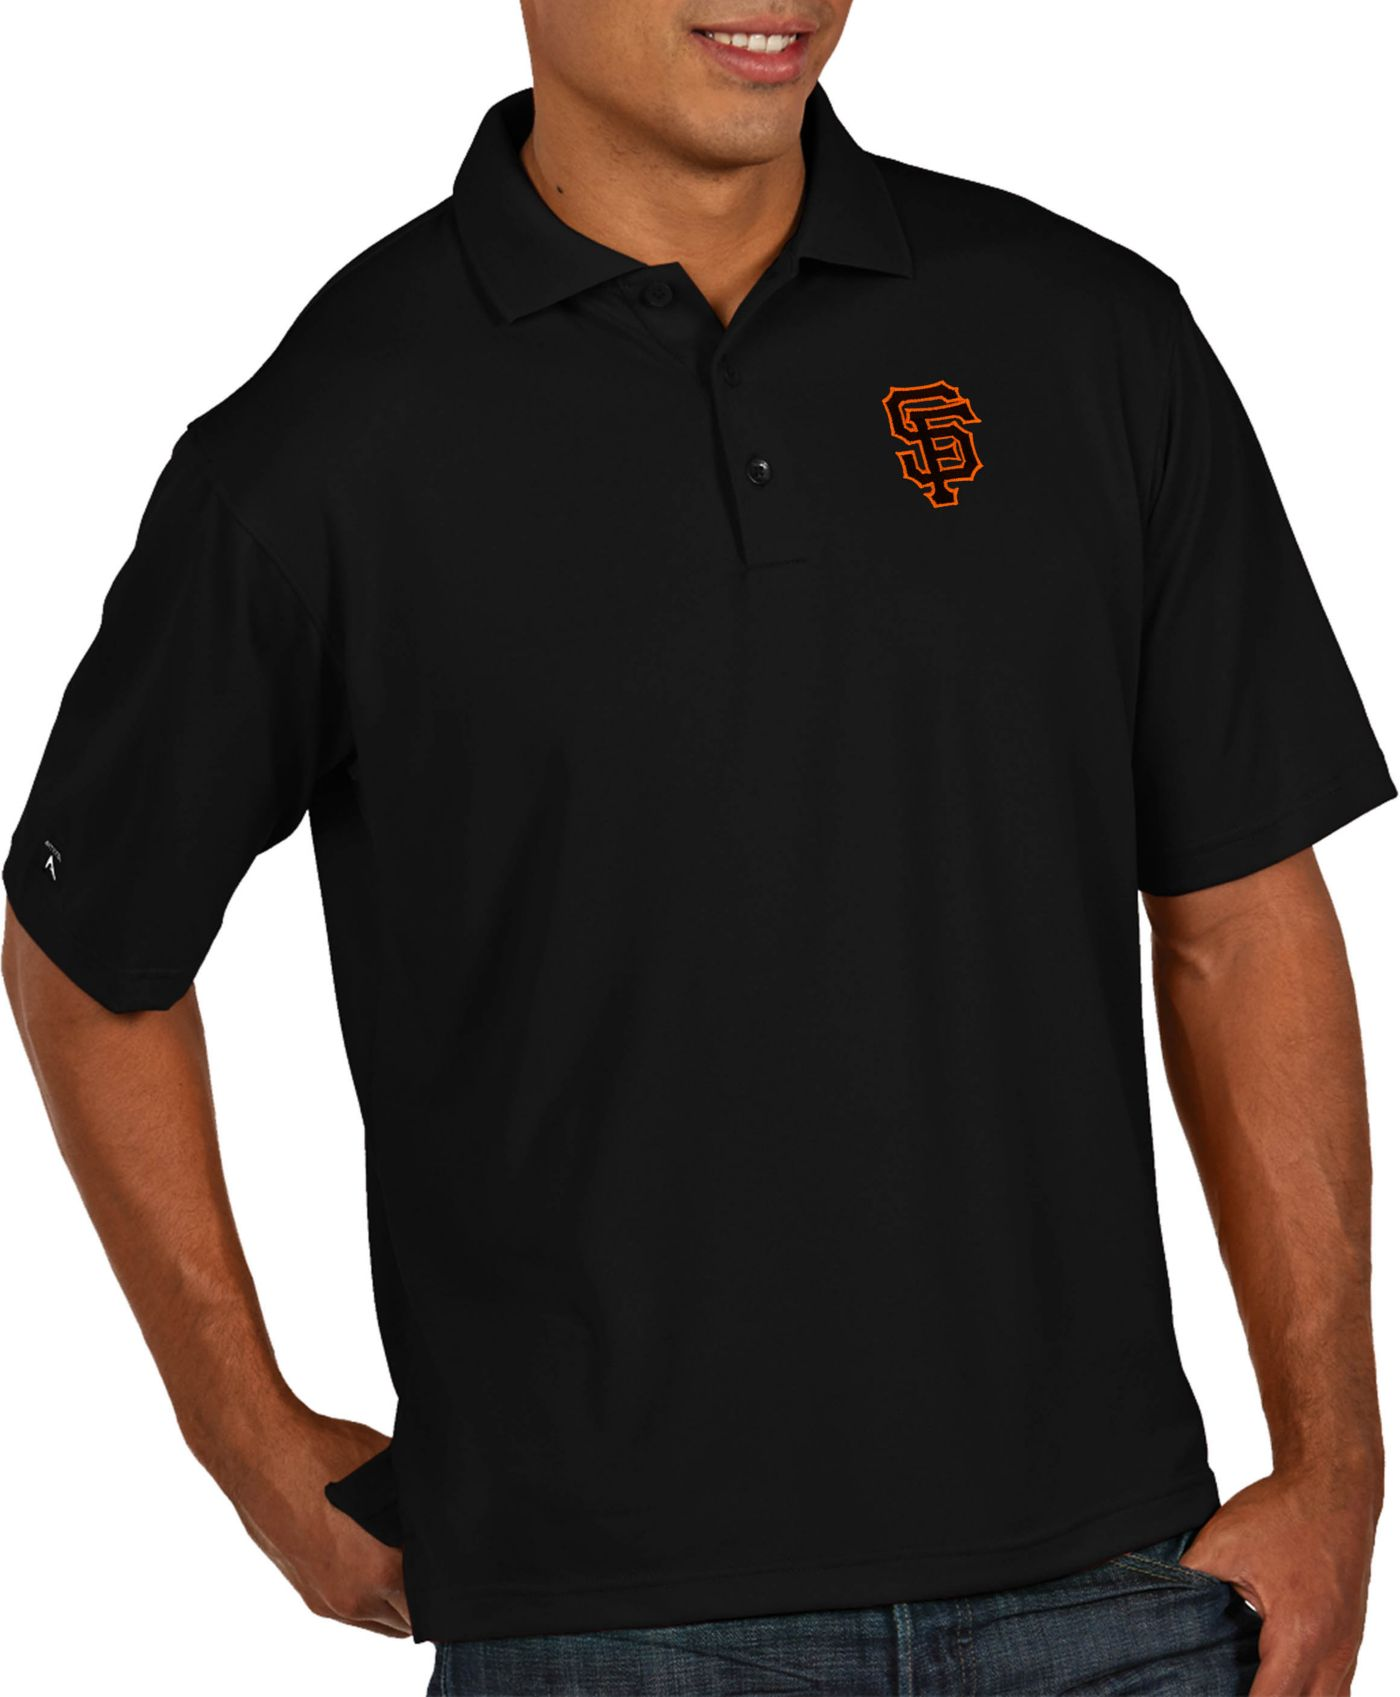 Antigua Men's San Francisco Giants Pique Black Performance Polo